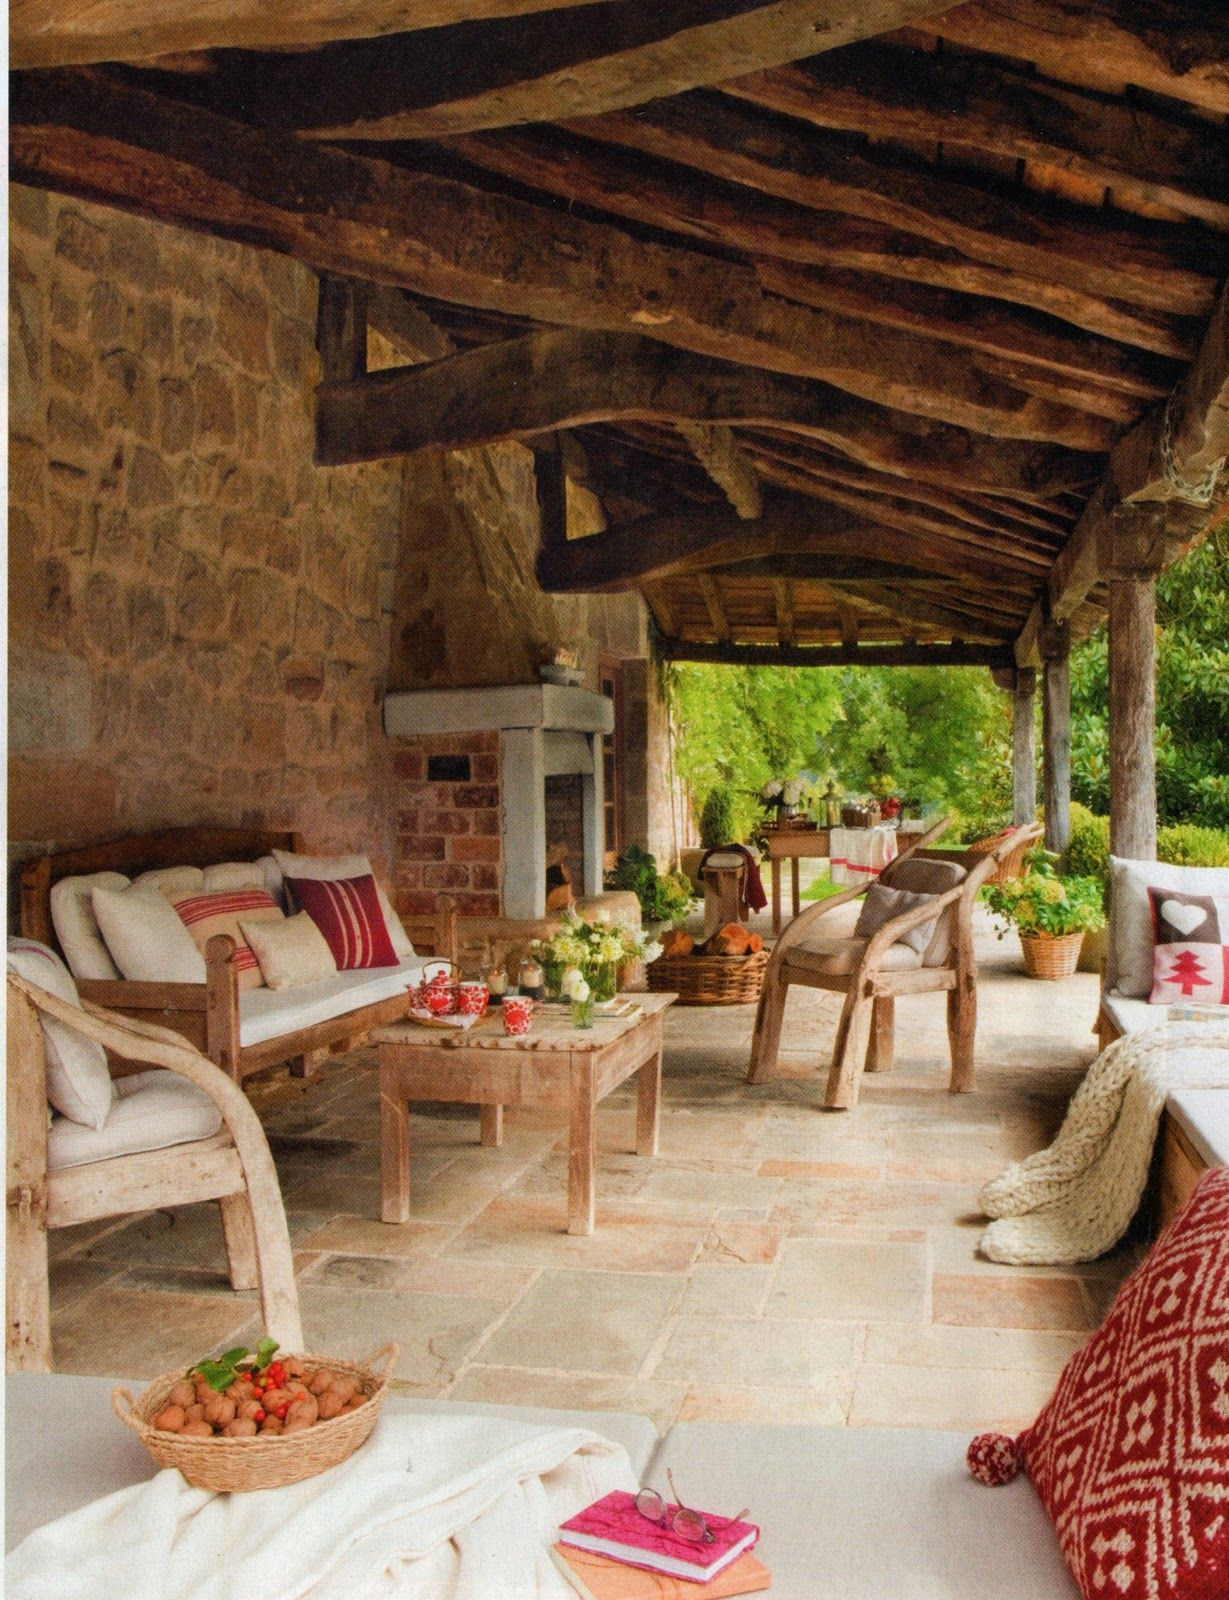 Pin by diane osburnsen on new casa pinterest porch patios and